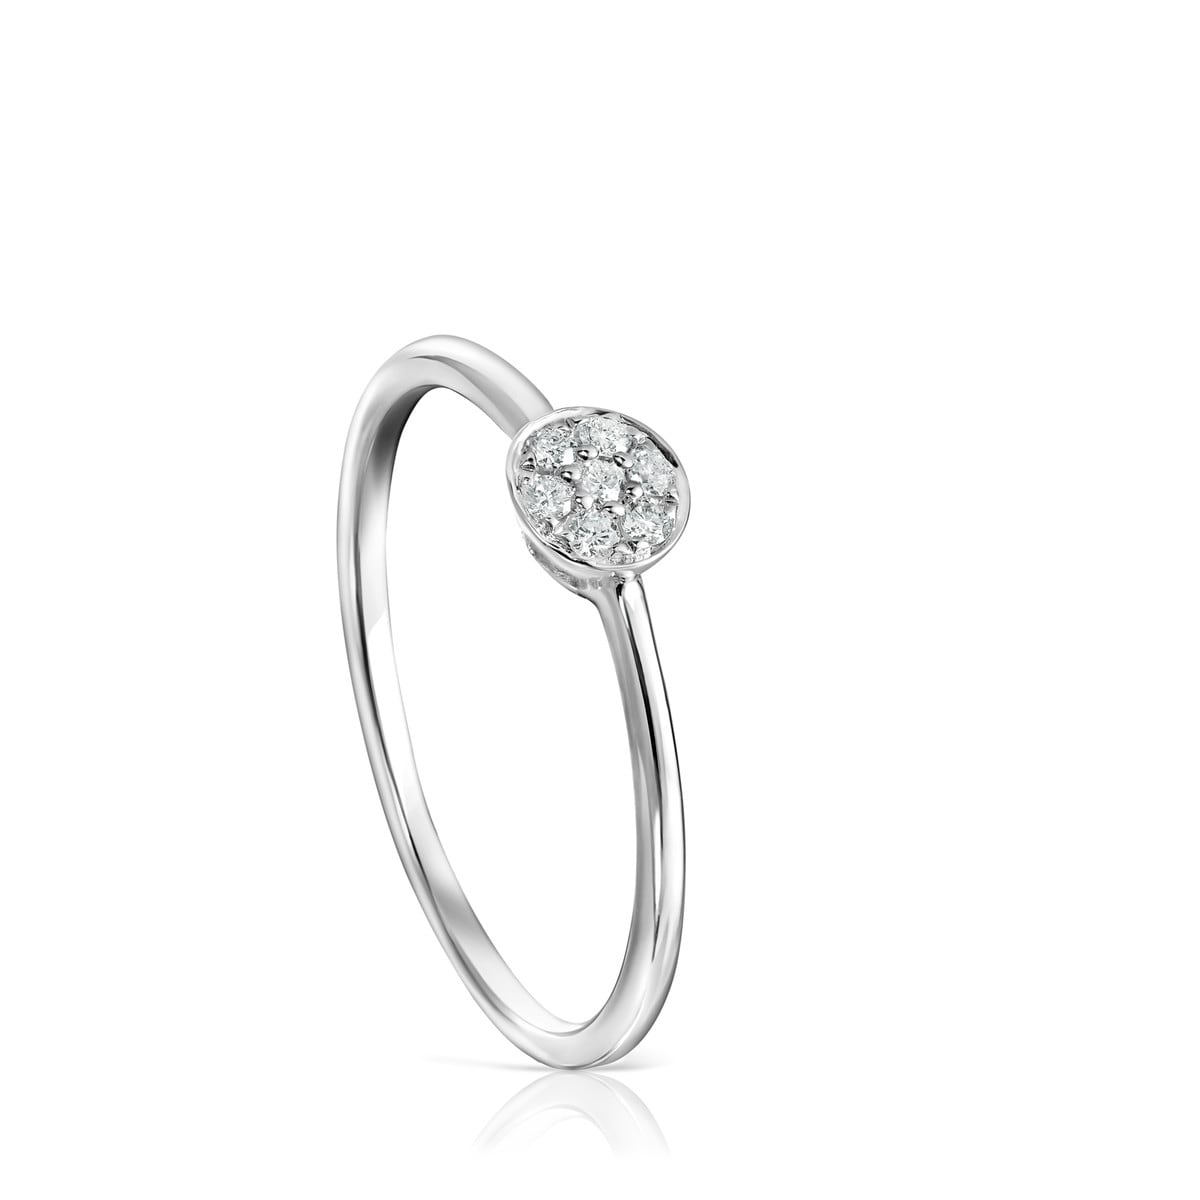 White Gold with Diamonds Alecia Ring